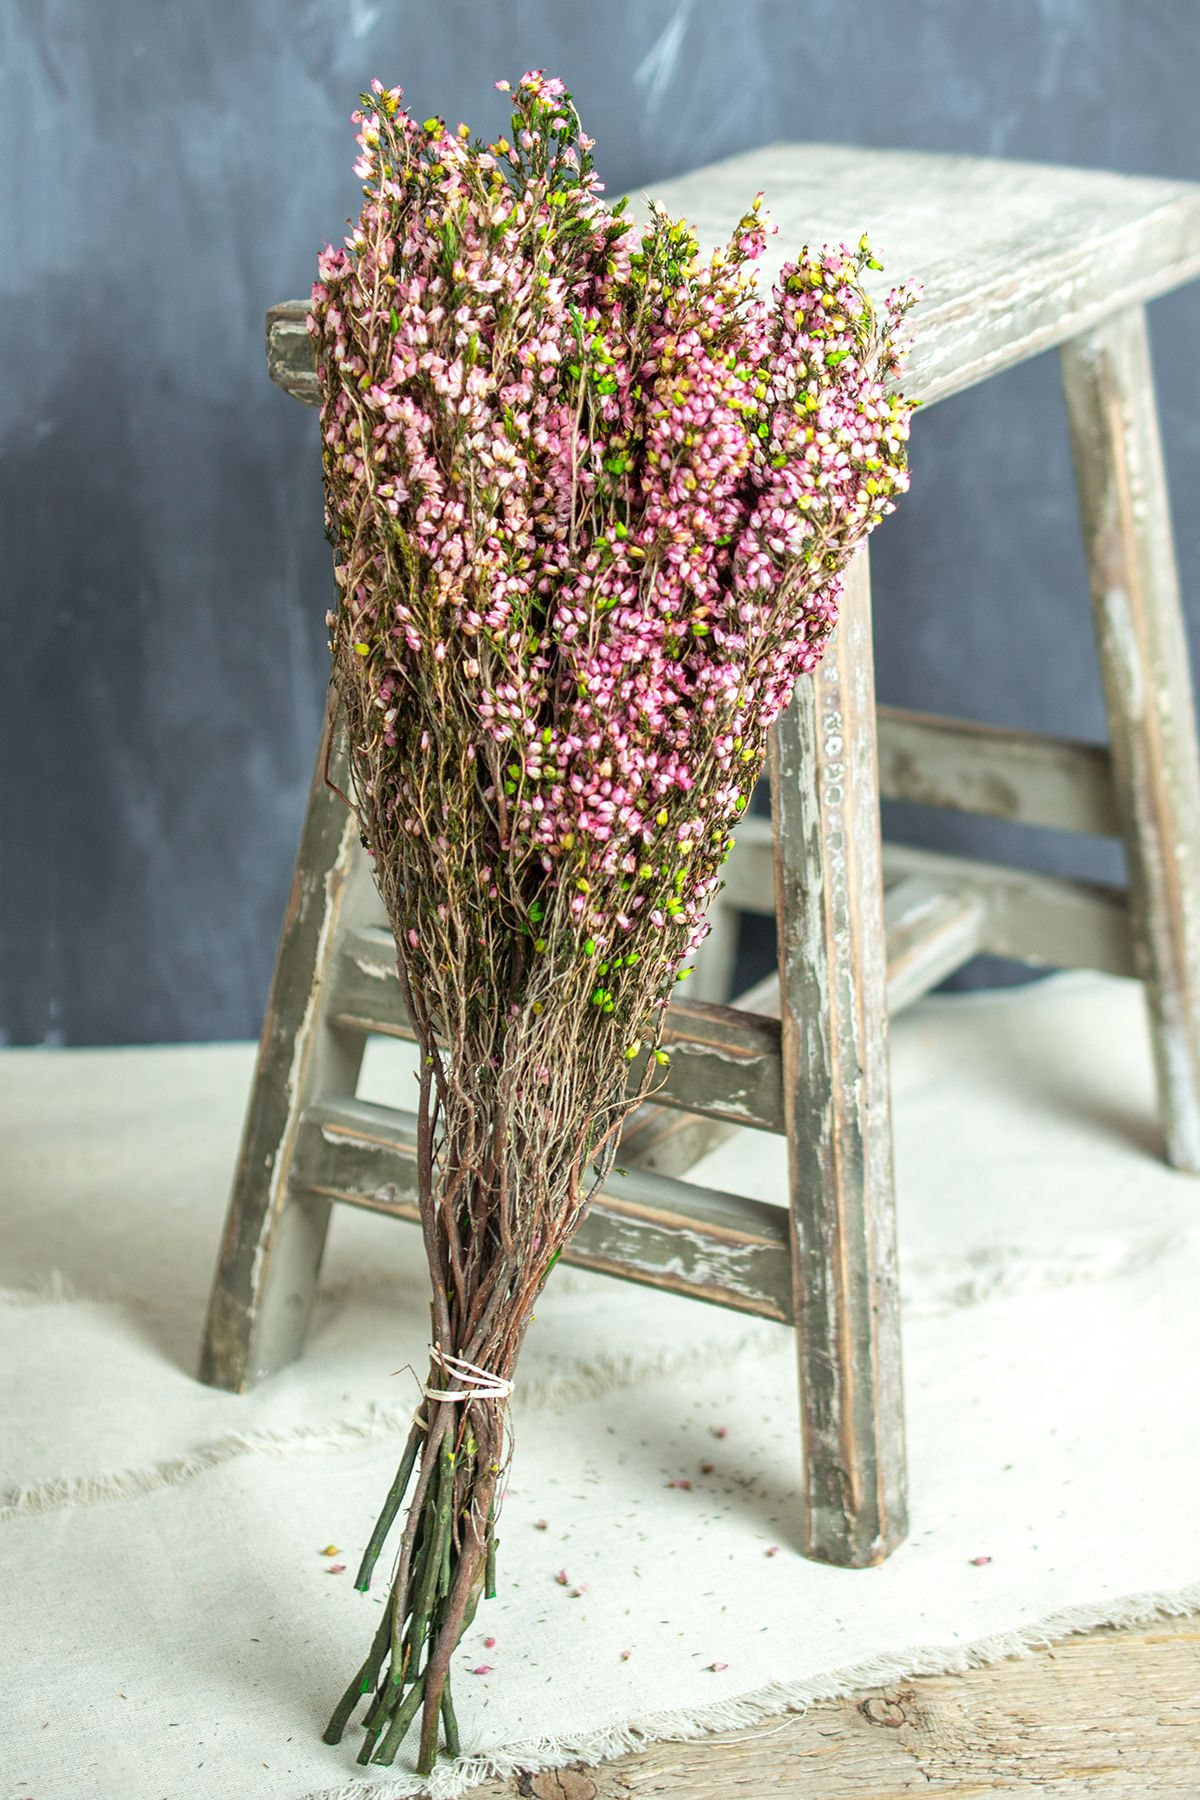 Create Your Own Preserved Bouquets With These Delicate Pink Flowers Dried Flowers Fresh Flowers Arrangements Spring Bouquet